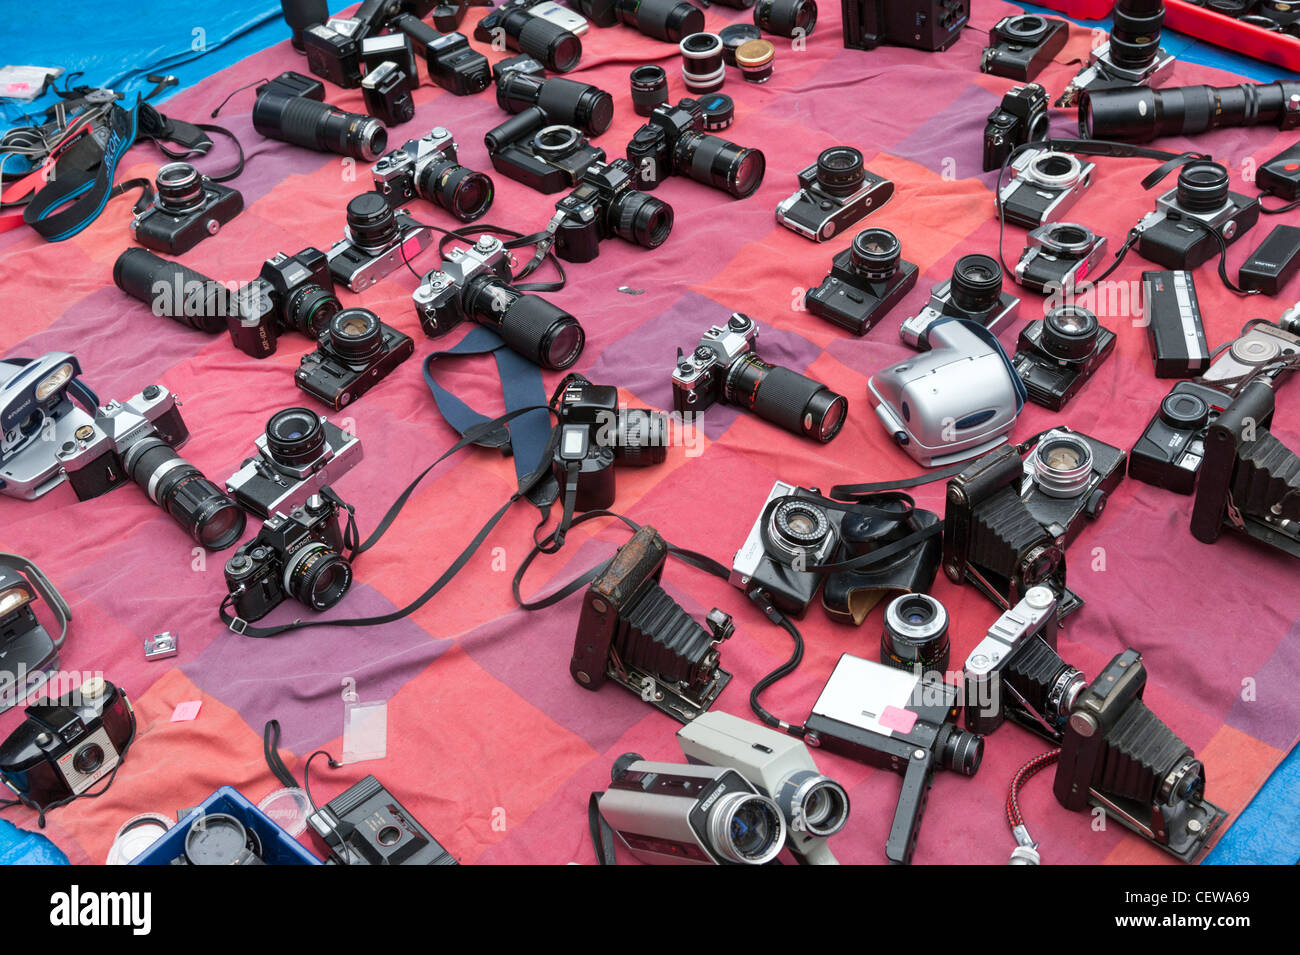 Old secondhand film cameras for sale on market stall in Brick Lane, London, England, UK - Stock Image